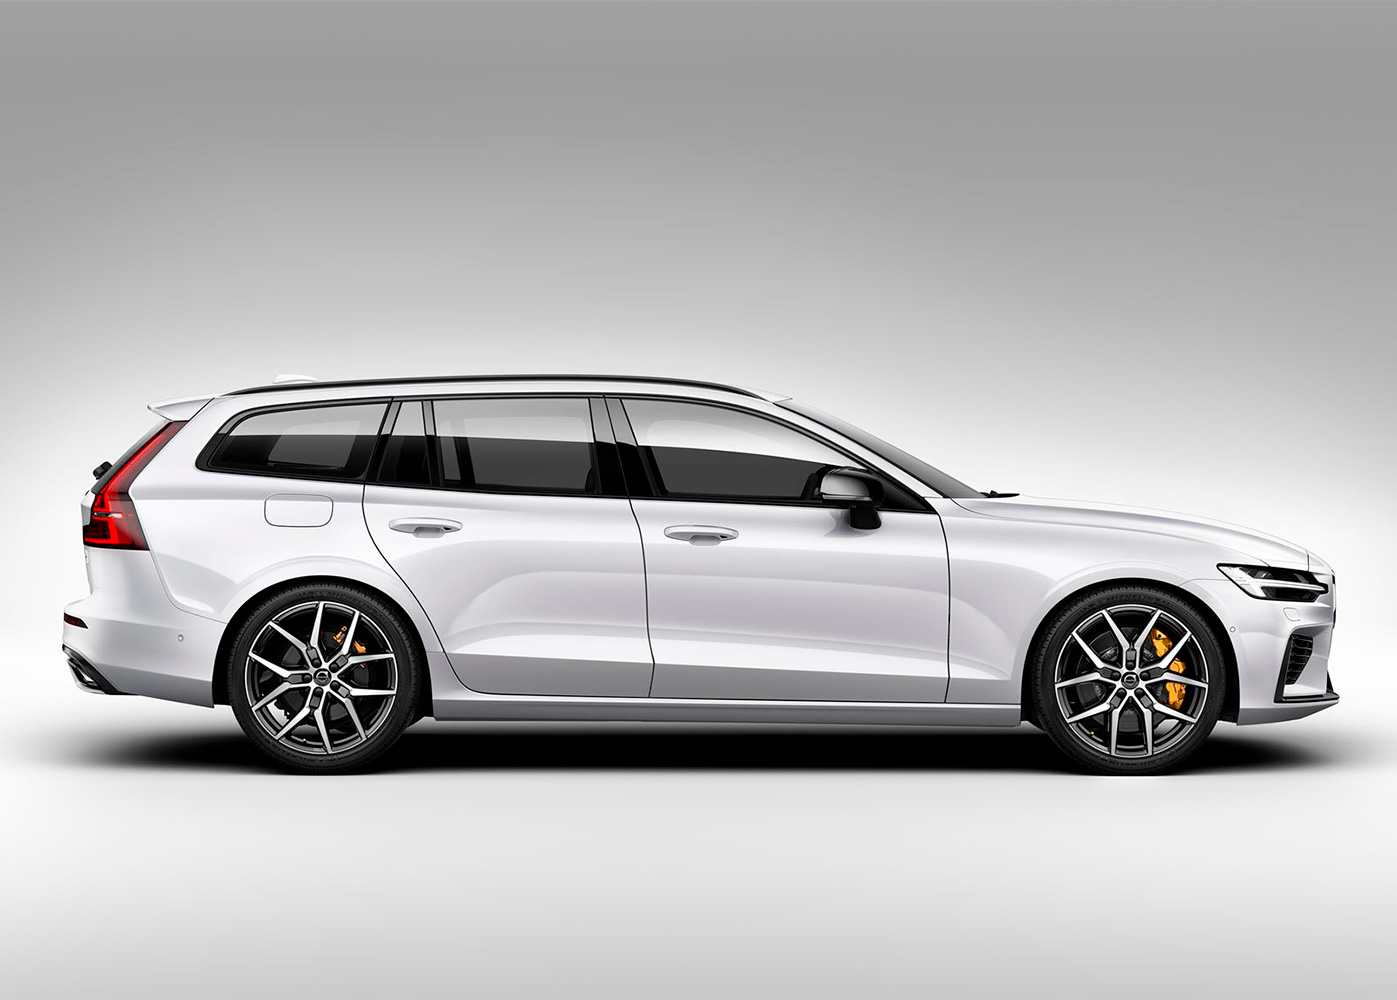 Volvo is Giving the V60 Wagon Polestar Performance at werd.com